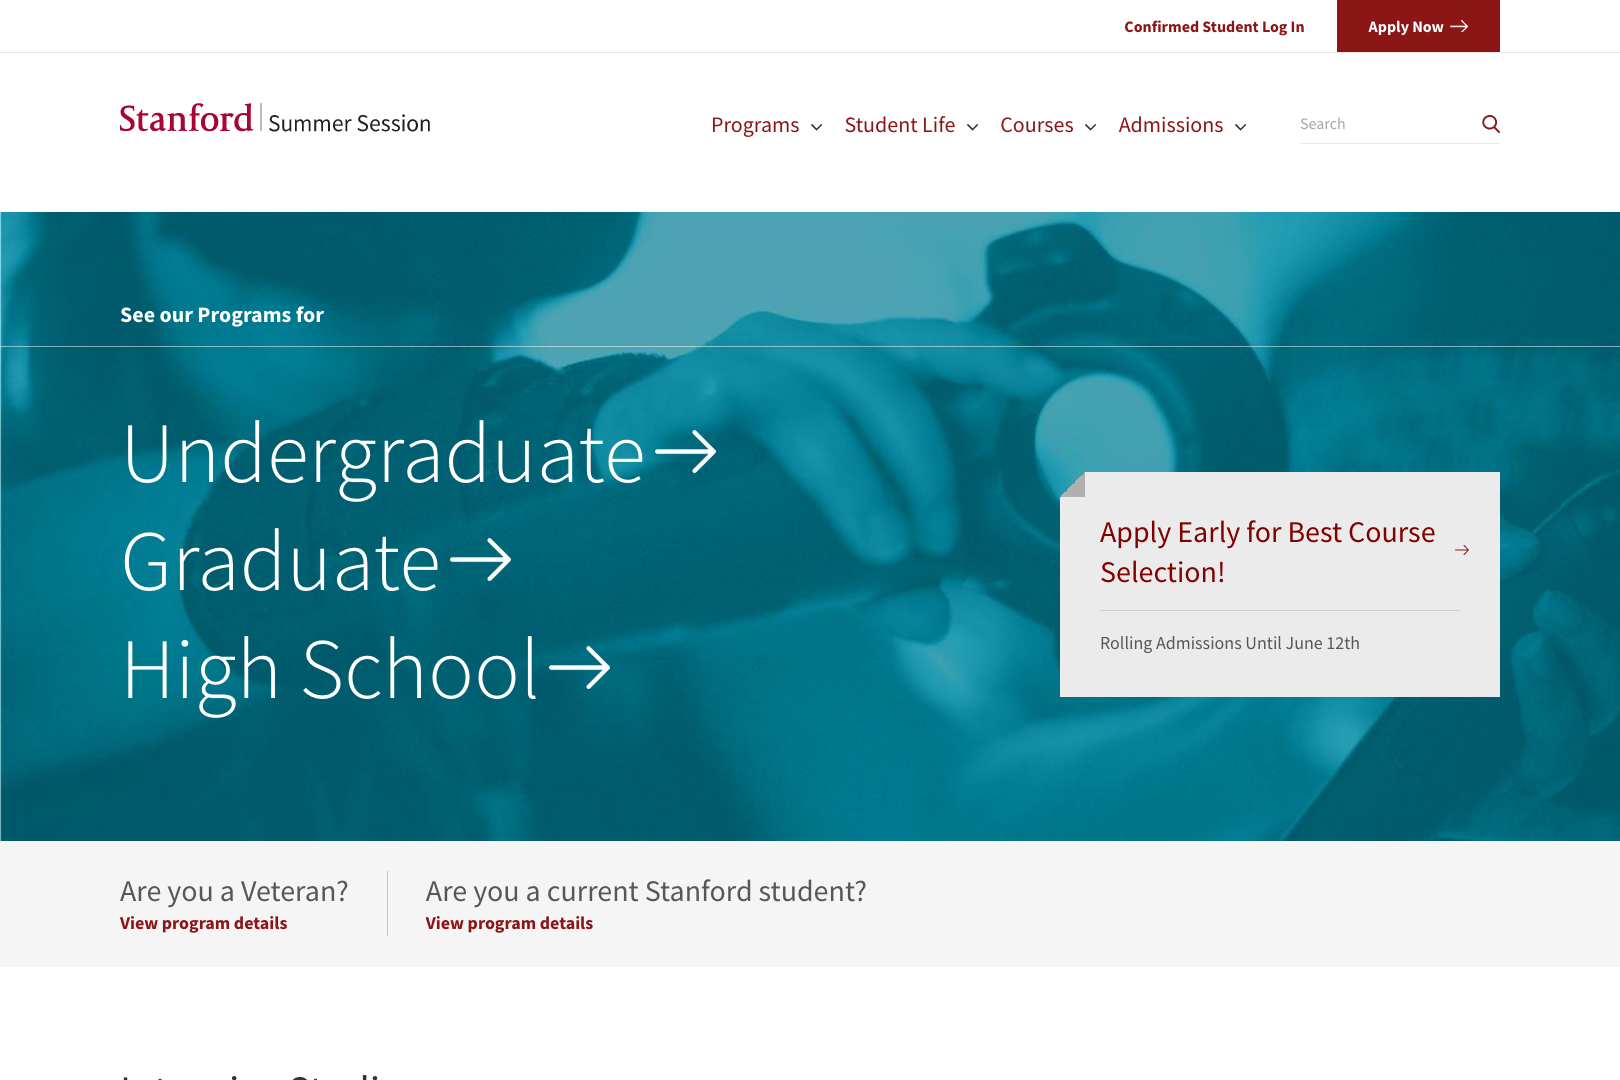 A screenshot of the Stanford Summer Session Programs page